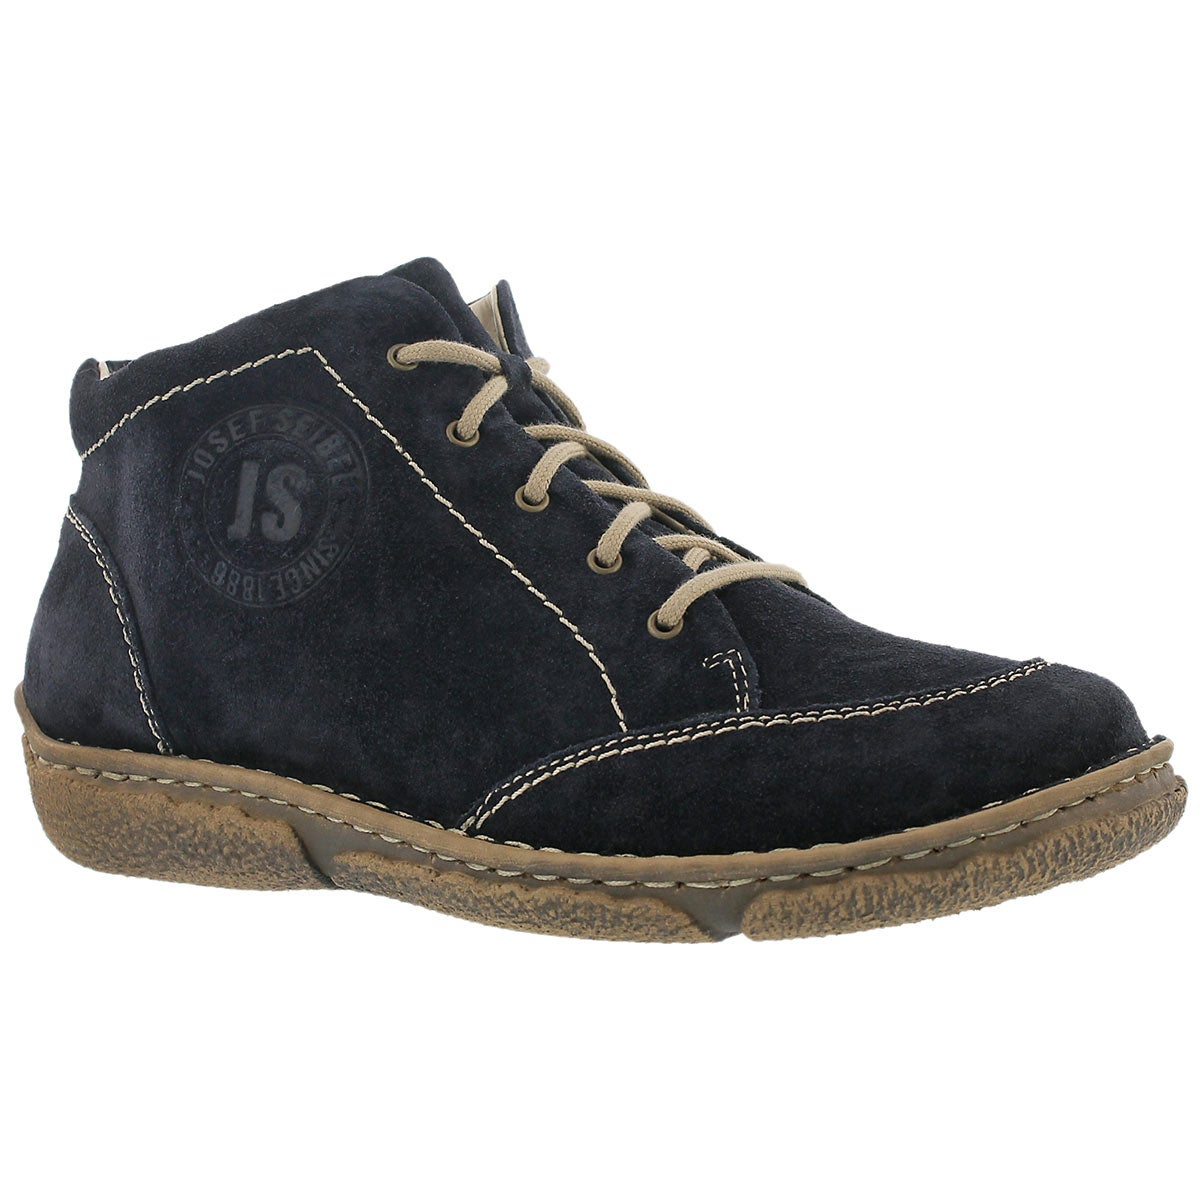 Lds Neele01 ocean casual sued ankle boot